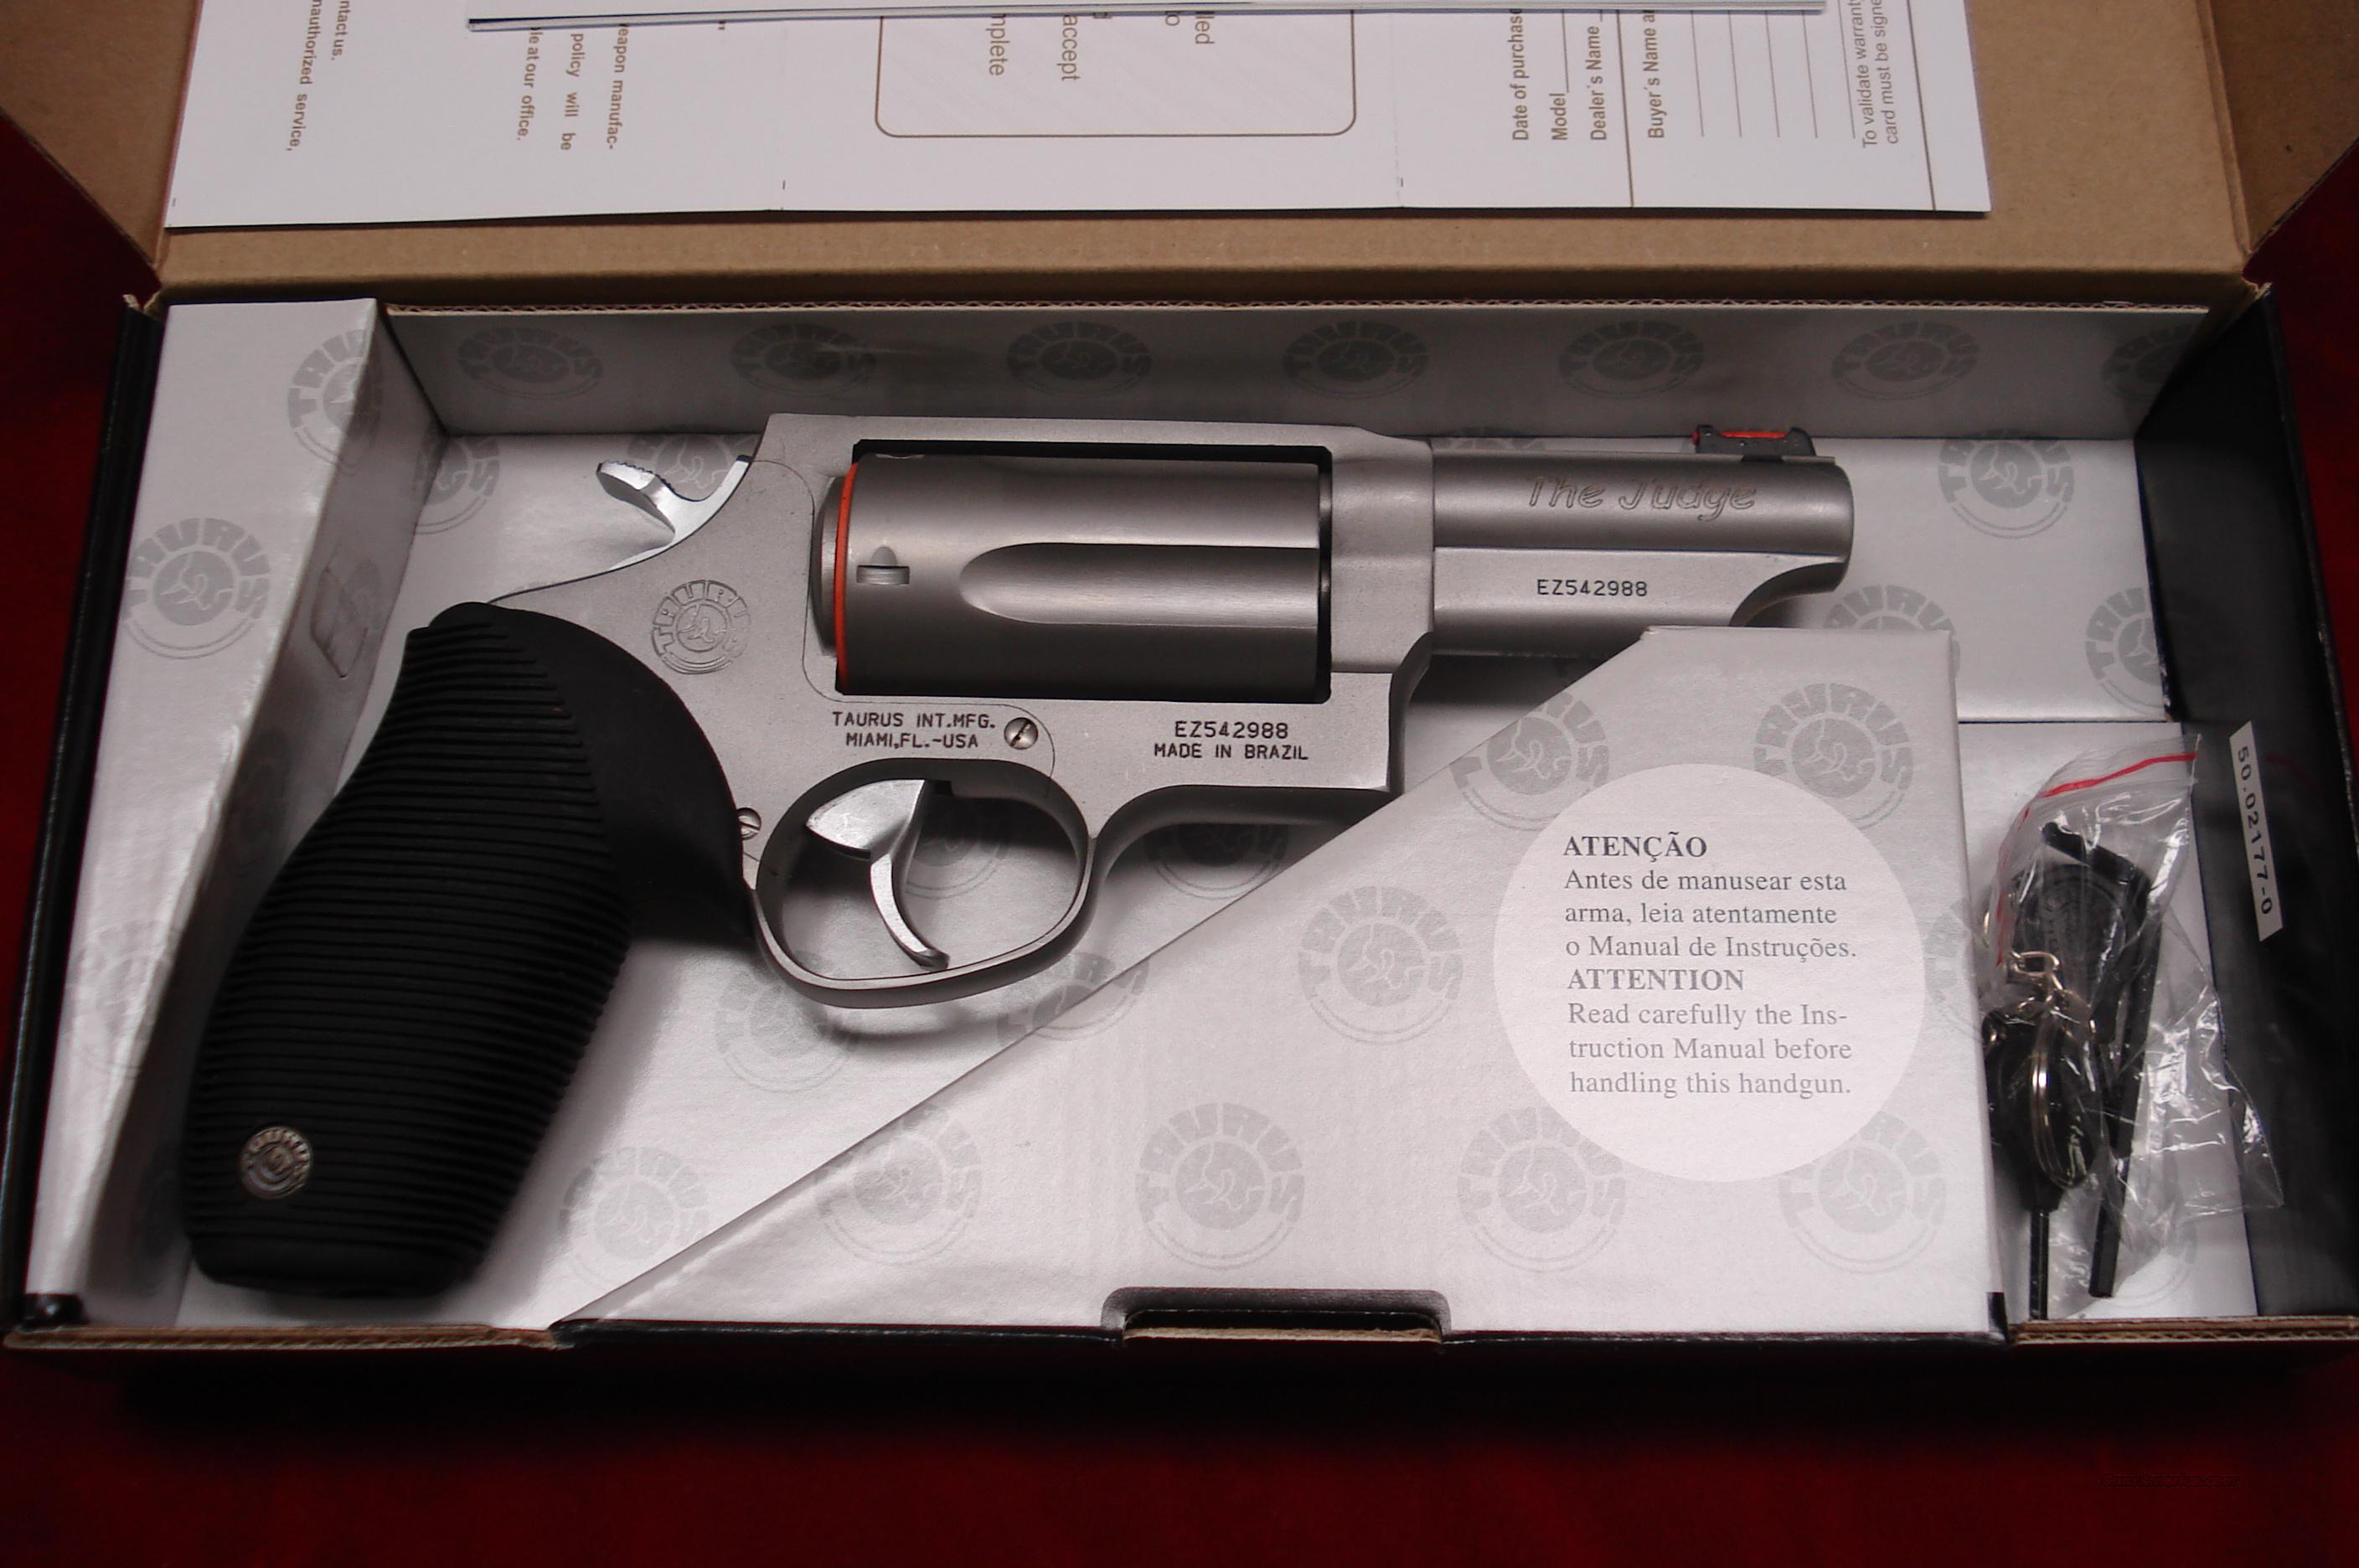 "TAURUS 410G REVOLVER "" THE JUDGE "" STAINLESS 3"" BARREL NEW   Guns > Pistols > Taurus Pistols/Revolvers > Revolvers"